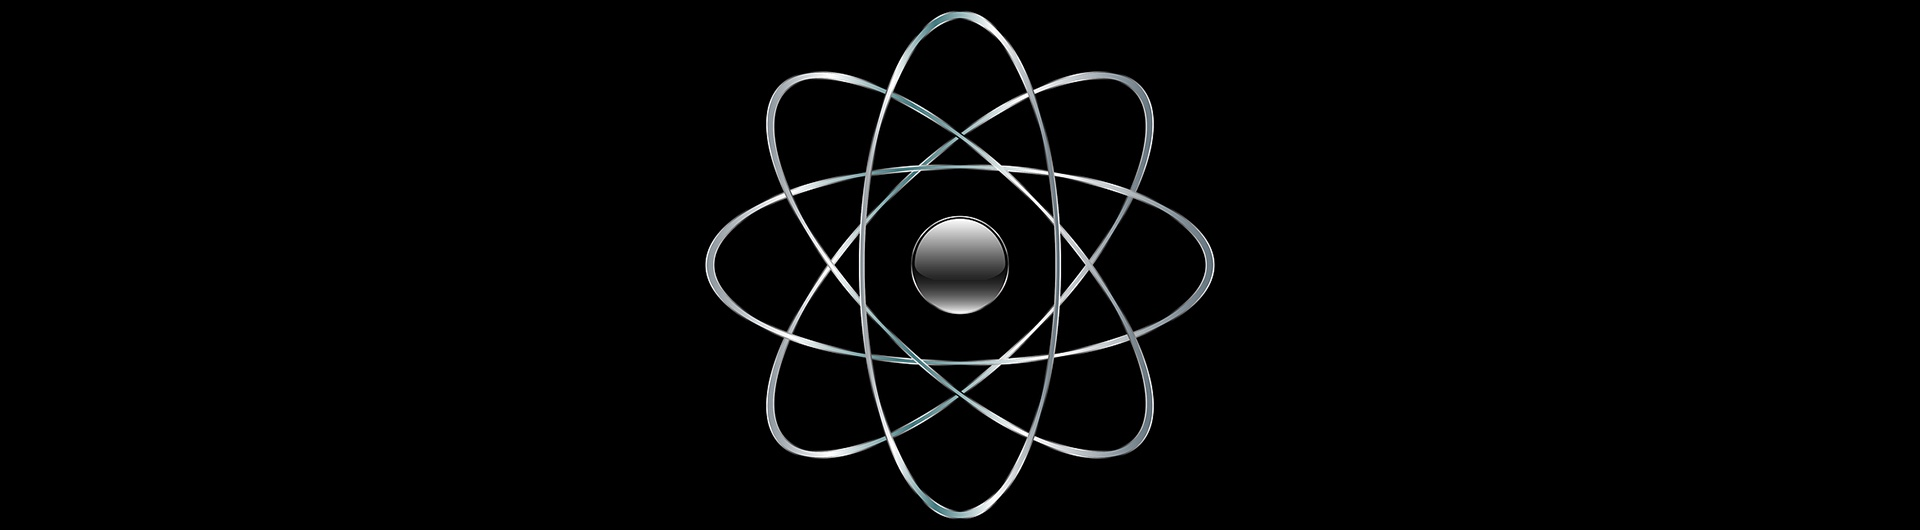 Three ways to see an atom